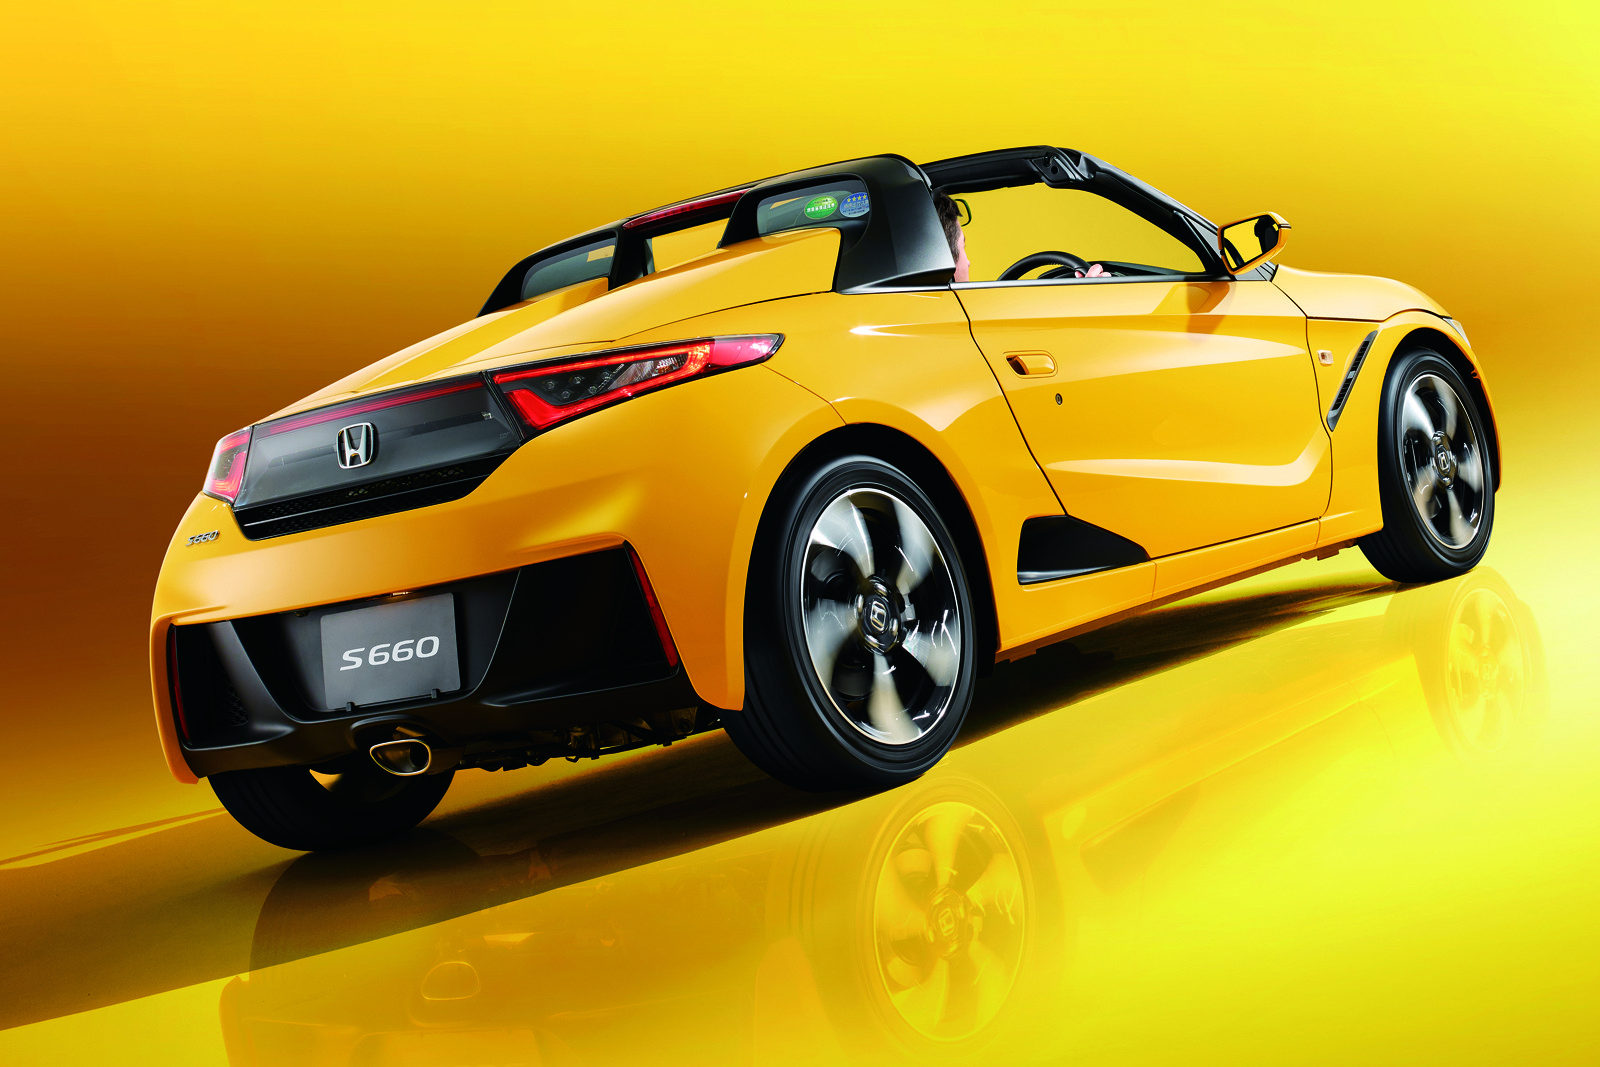 Honda S660 Kei Sportscar Is Sold Out In Japan 80 Percent Of Its